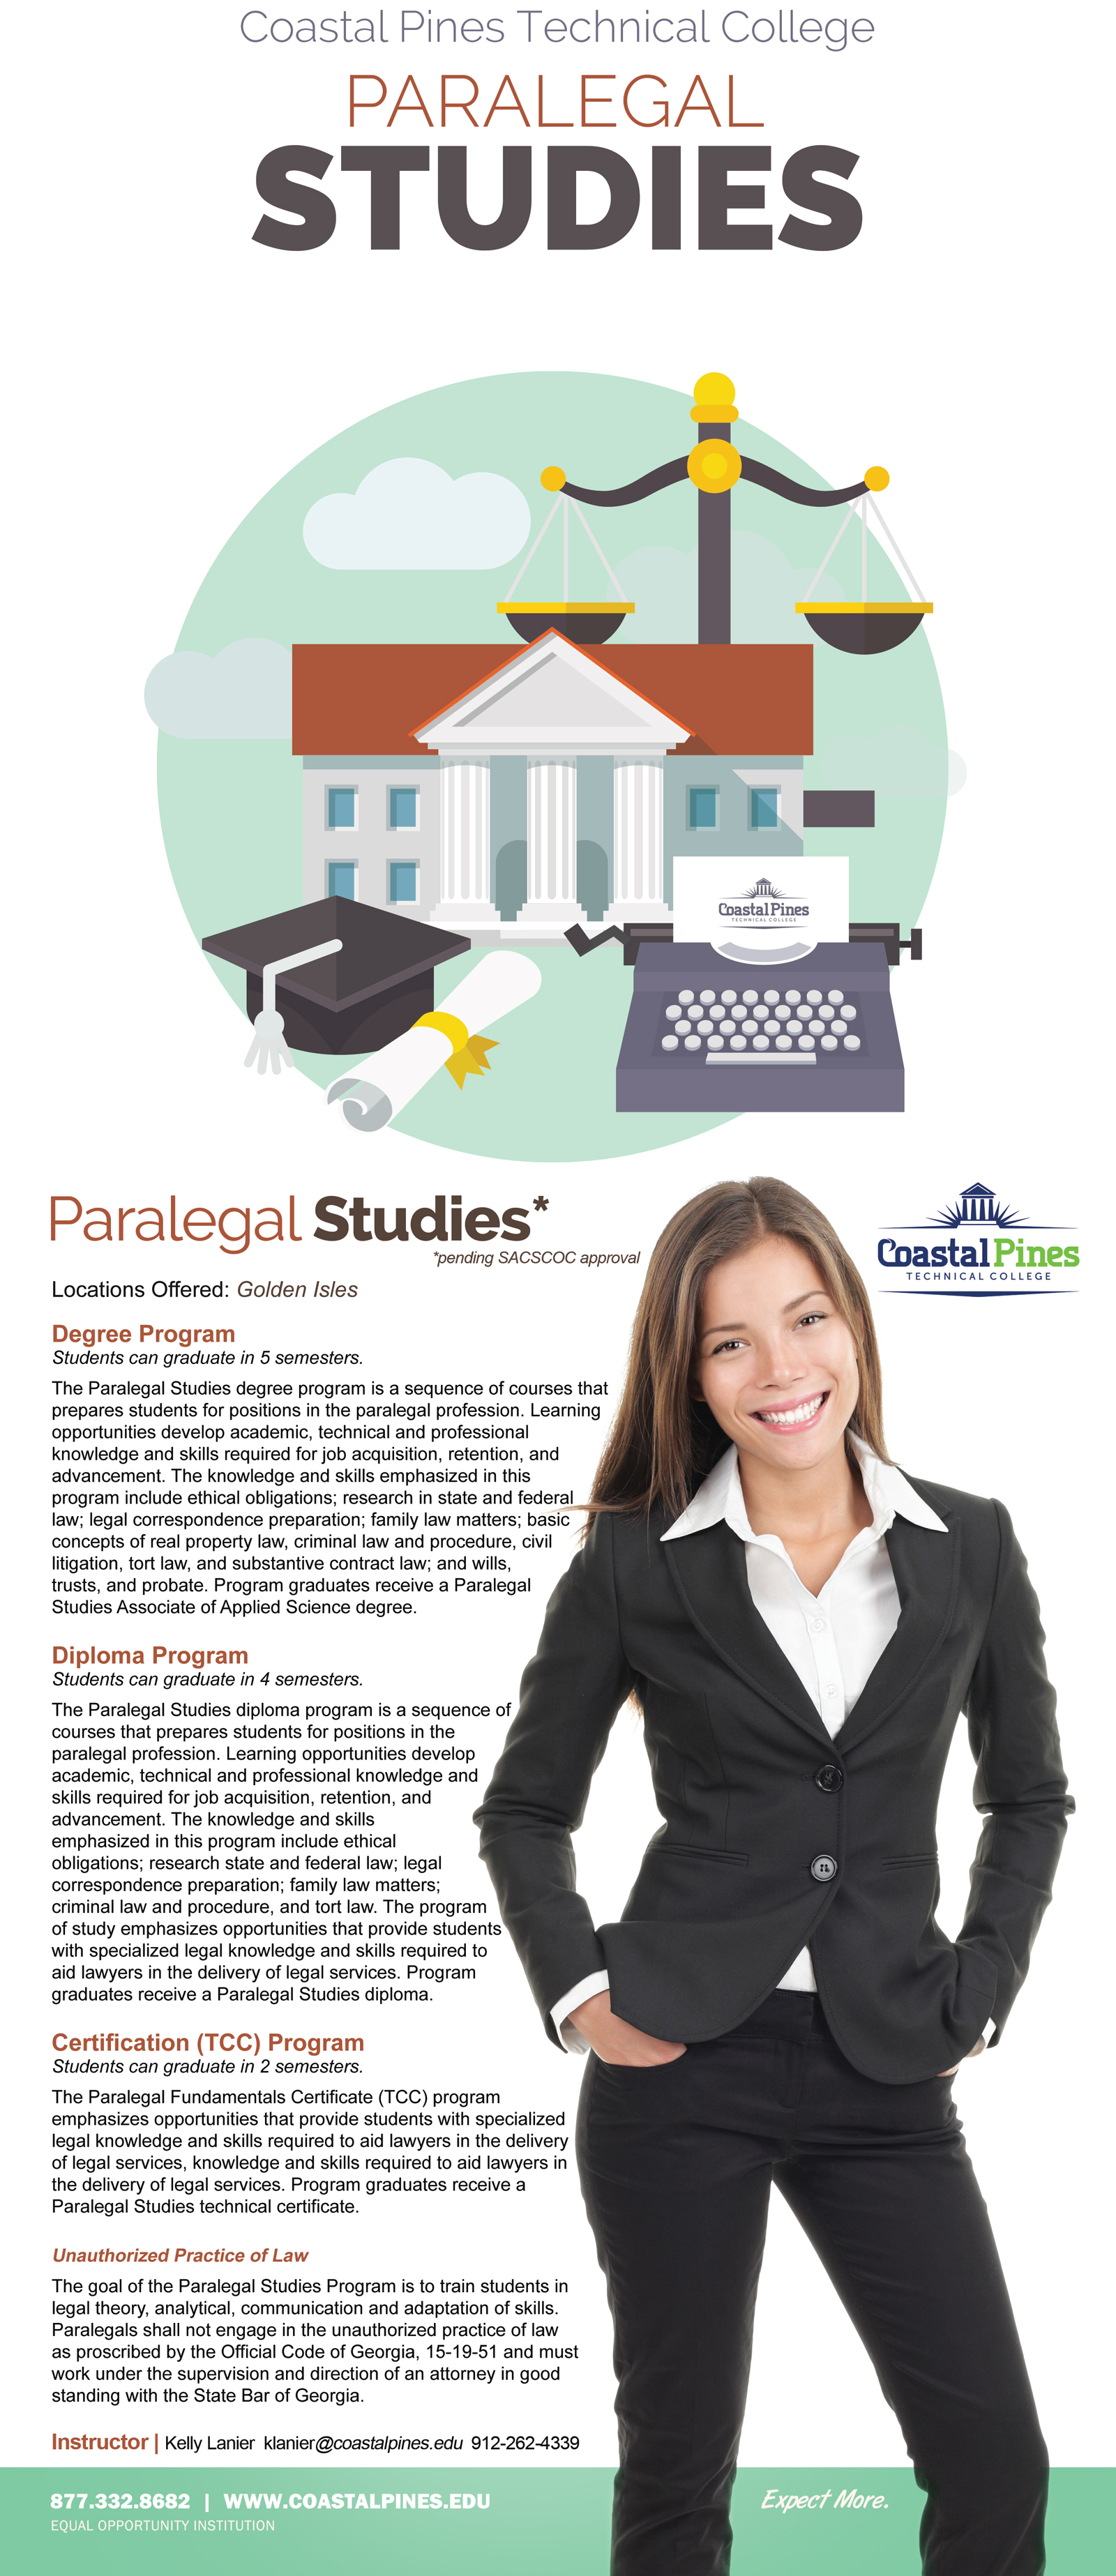 Image promotional poster for CPTC paralegal studies program